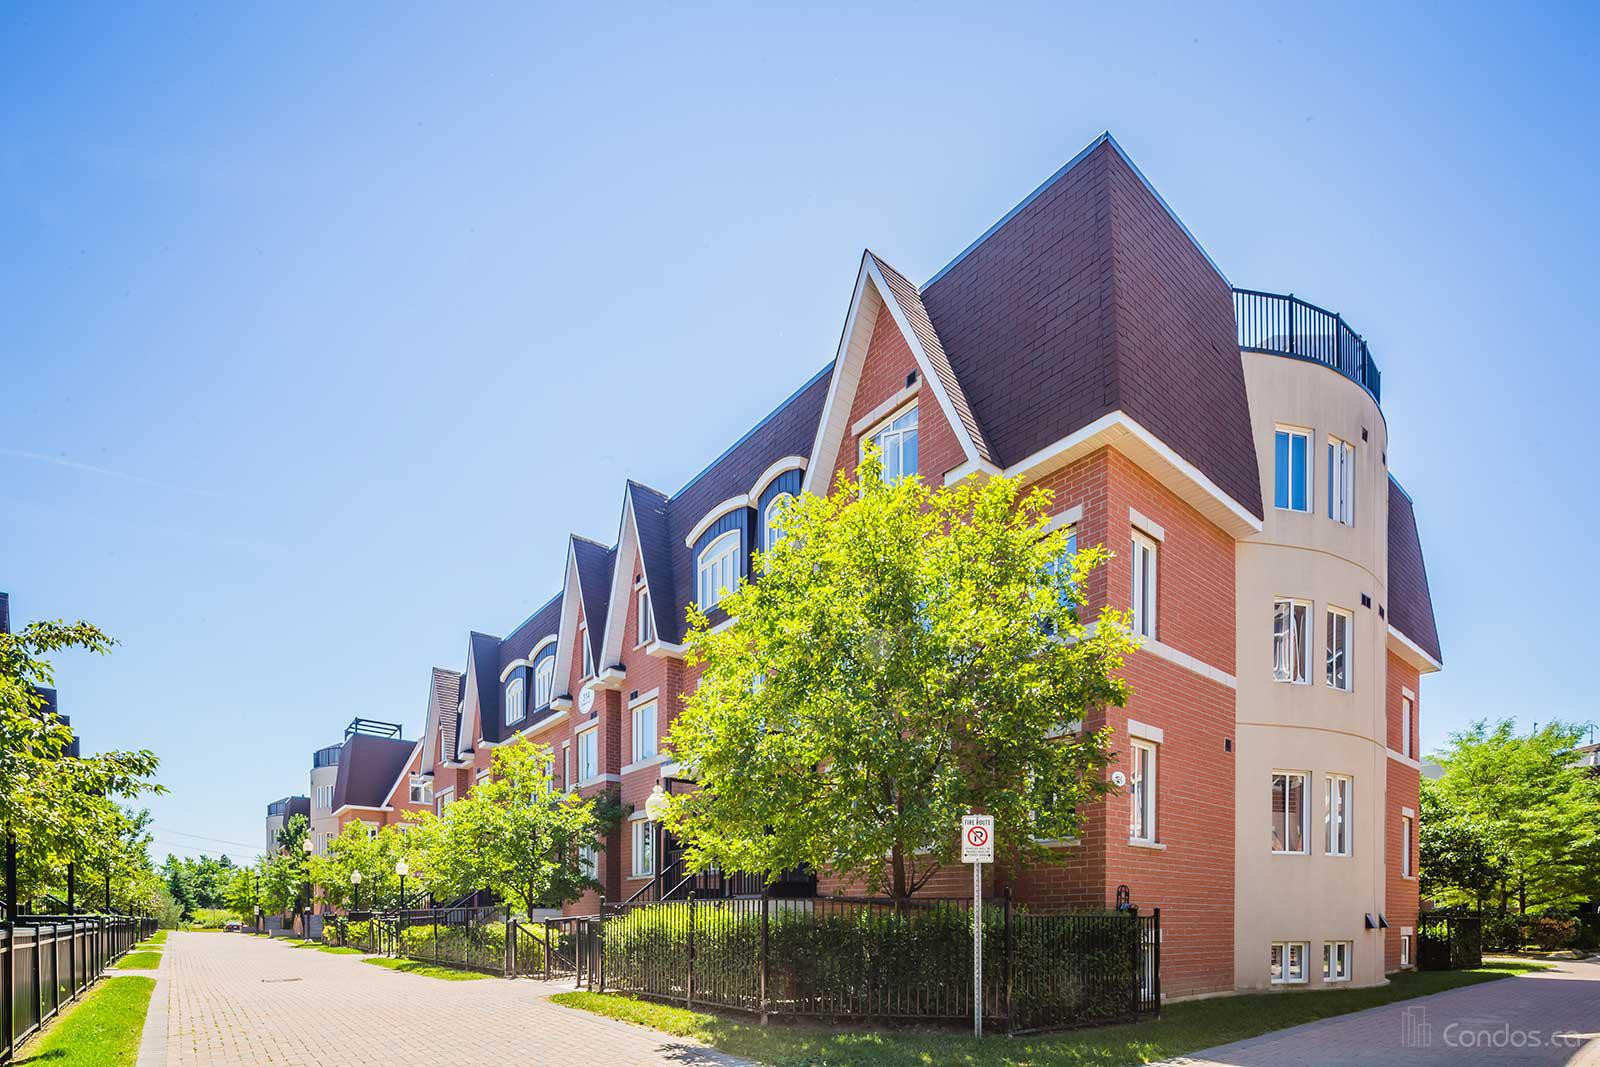 Townhomes of Thornhill Village at 308 John St, Markham 1